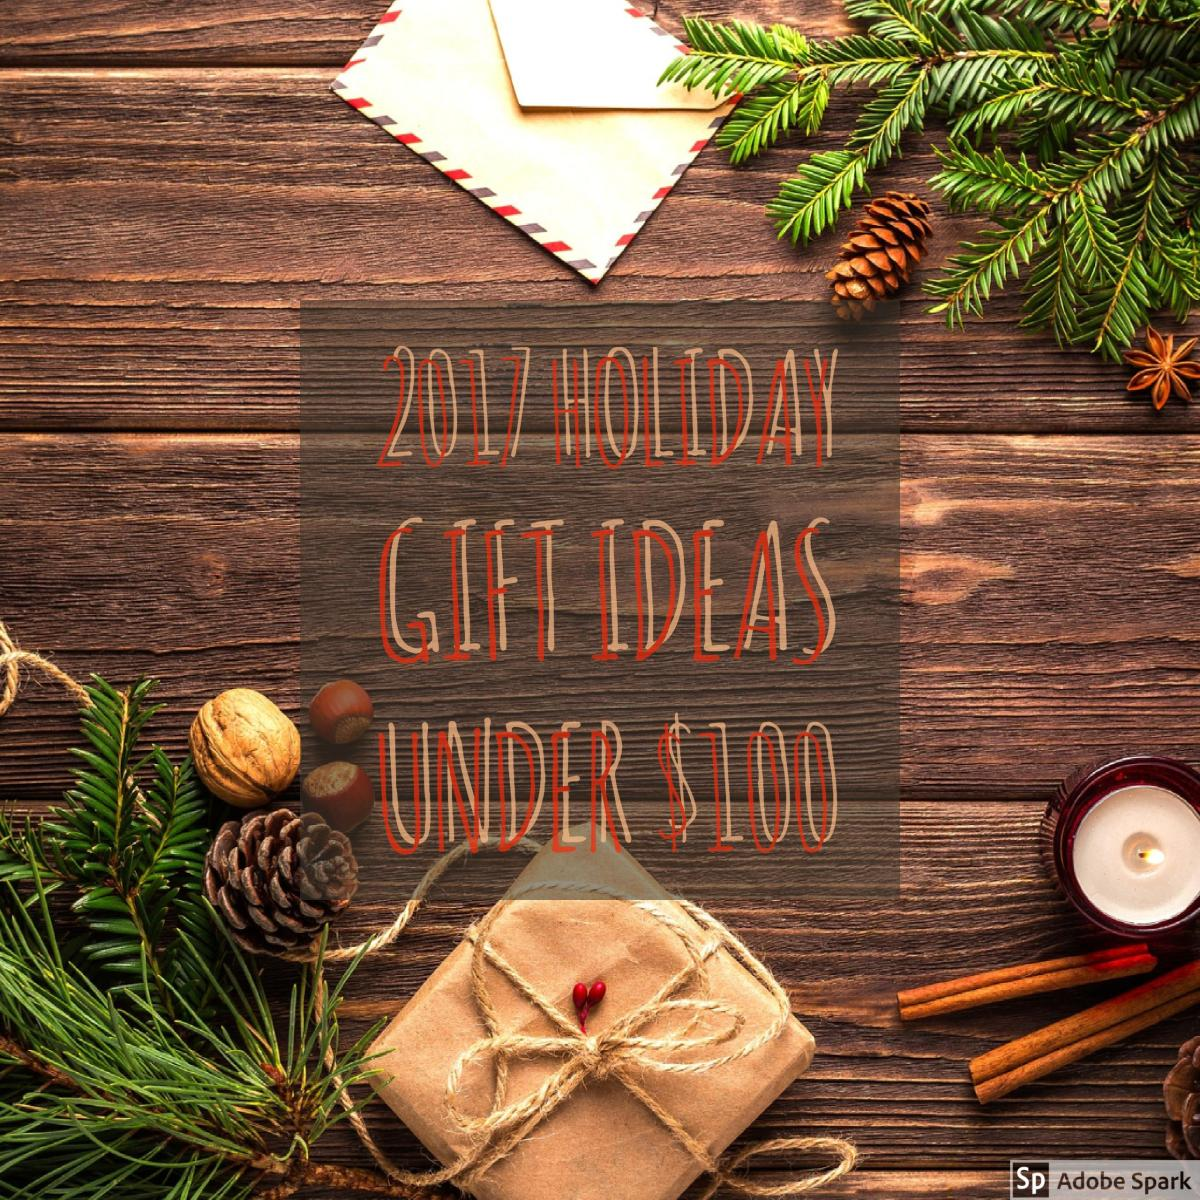 The Top Gifts I Will Be Giving This Holiday Season under $100